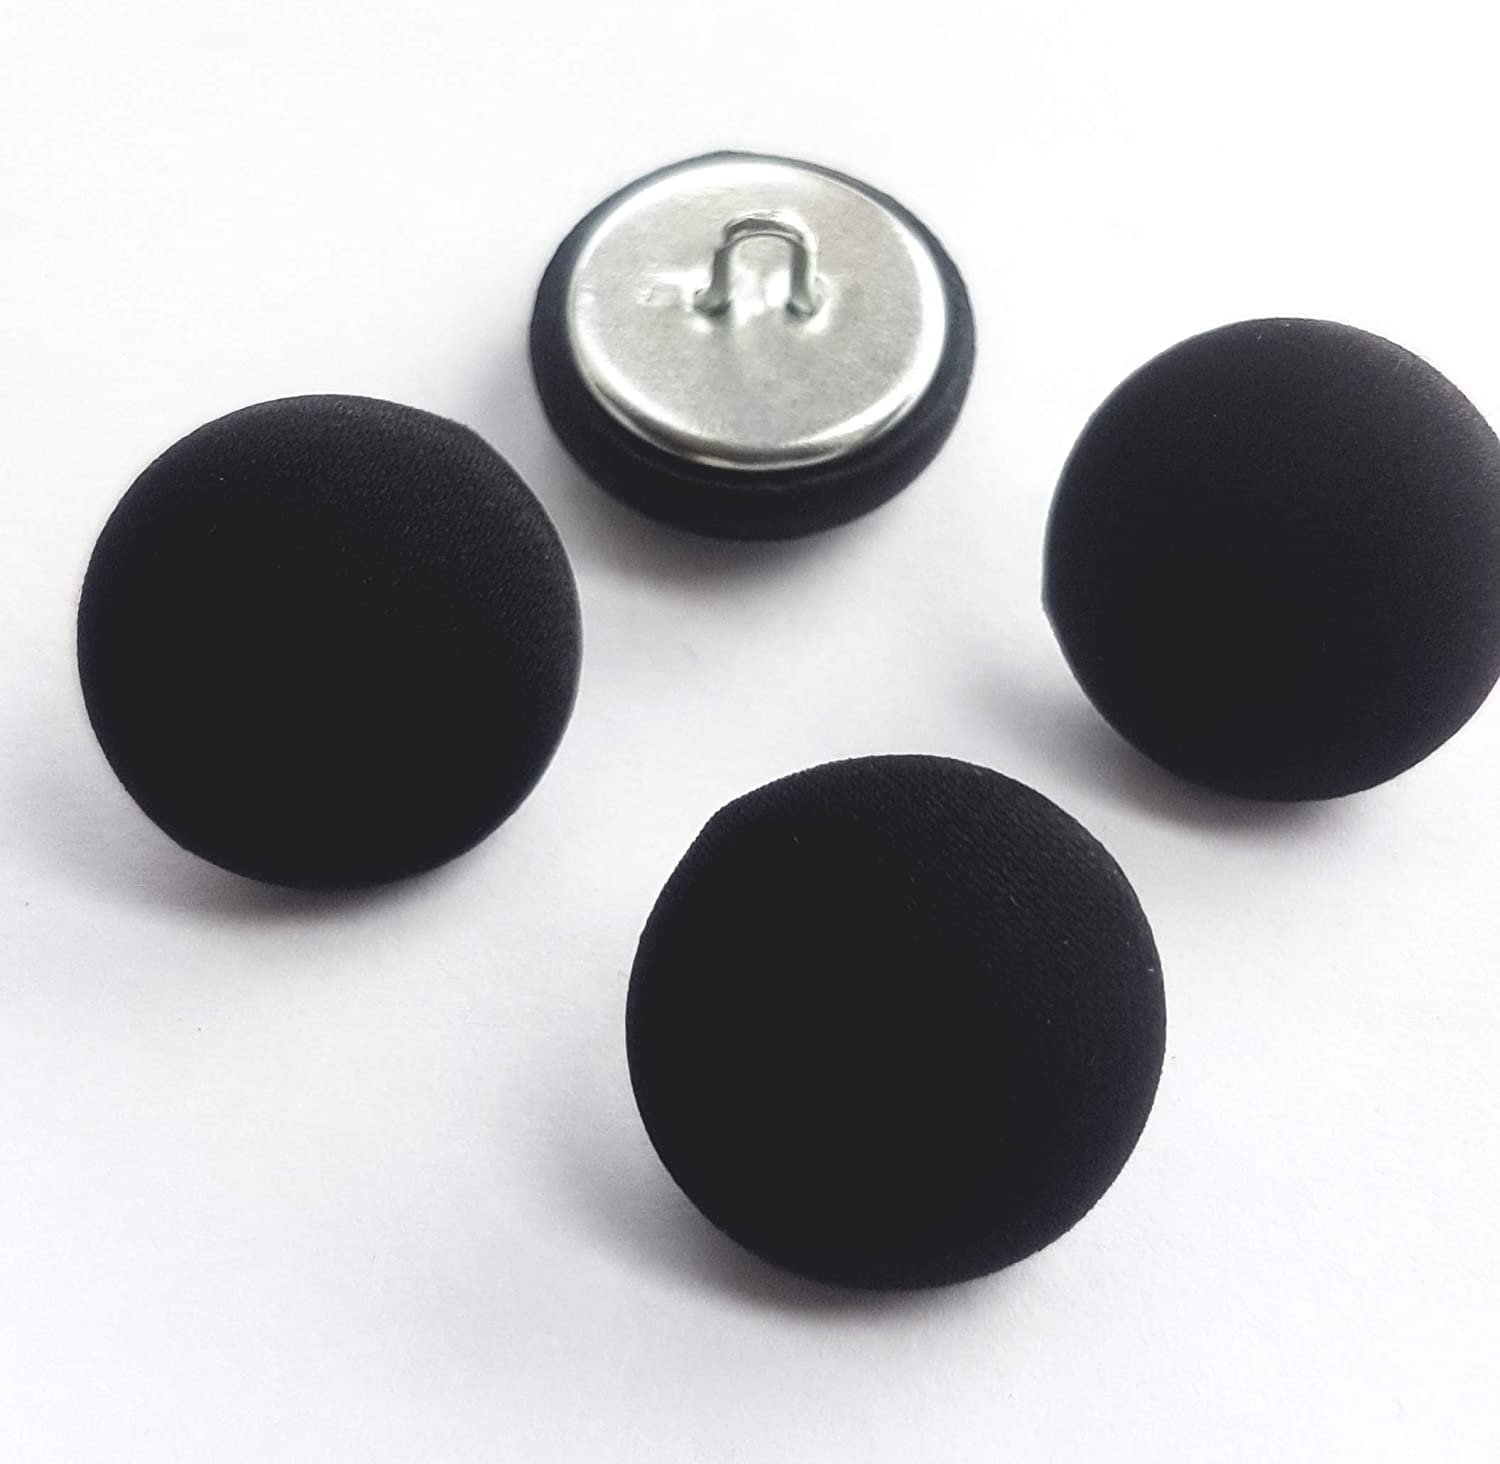 10x Cotton Fabric Covered Buttons Sewing Accessories for Garment Supplies